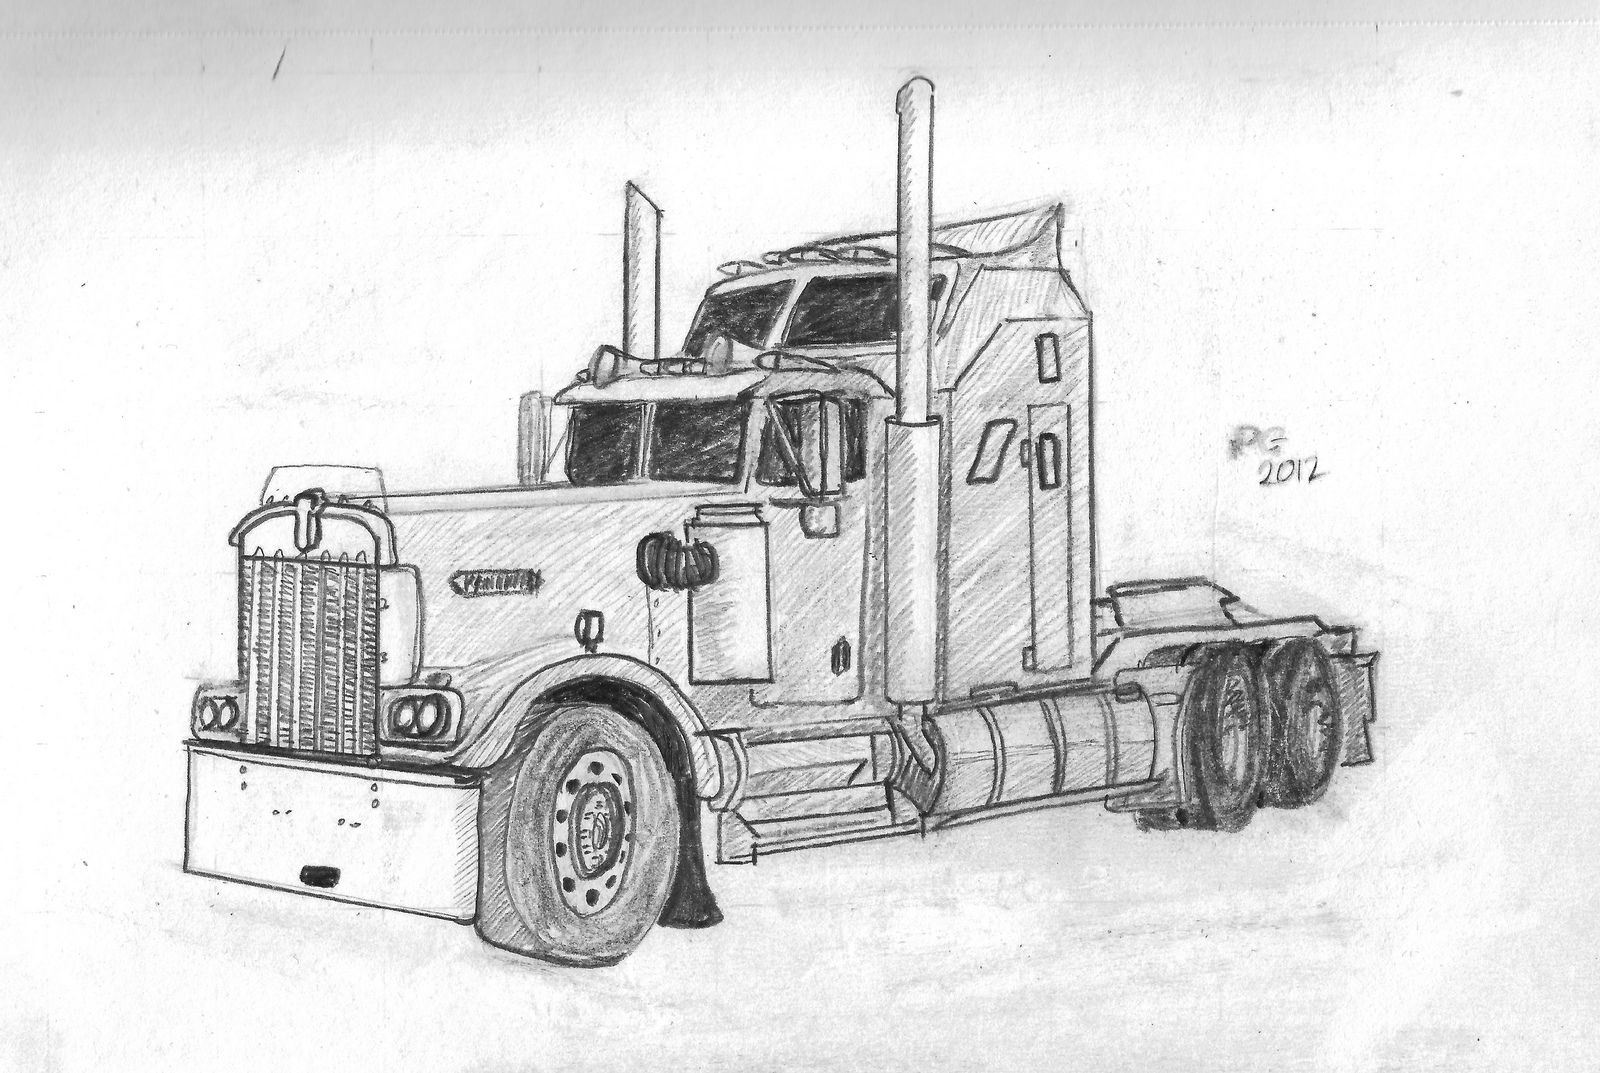 Truck Pencil Drawings Truck Drawings In Pencil Pencil Drawing A5